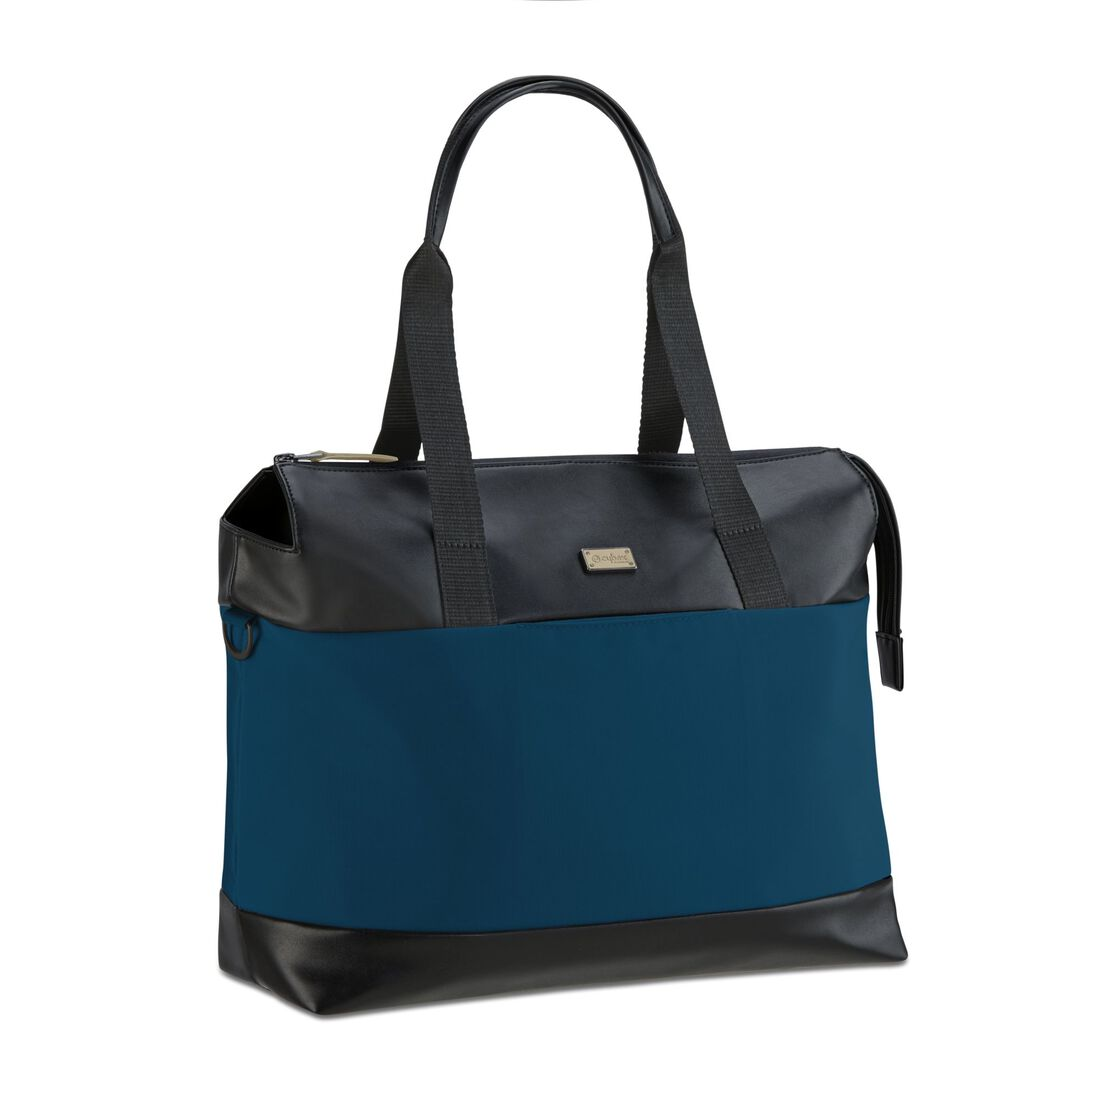 CYBEX Mios Changing Bag - Mountain Blue in Mountain Blue large image number 1